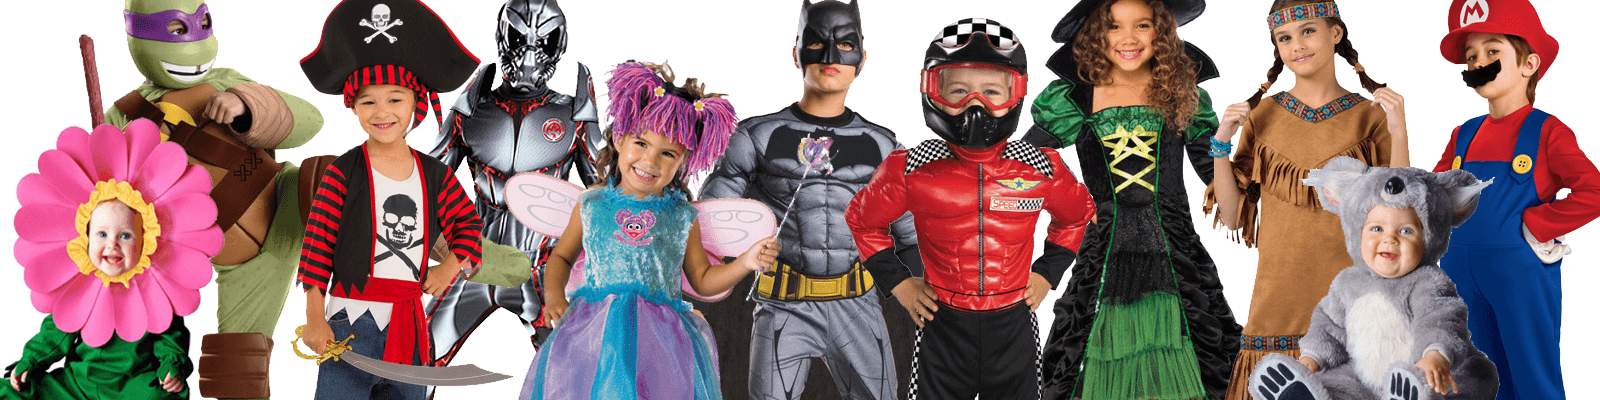 Kids Costumes  sc 1 st  Halloween Express & Halloween Costumes for Kids are Here! Popular Kids Costumes and ...